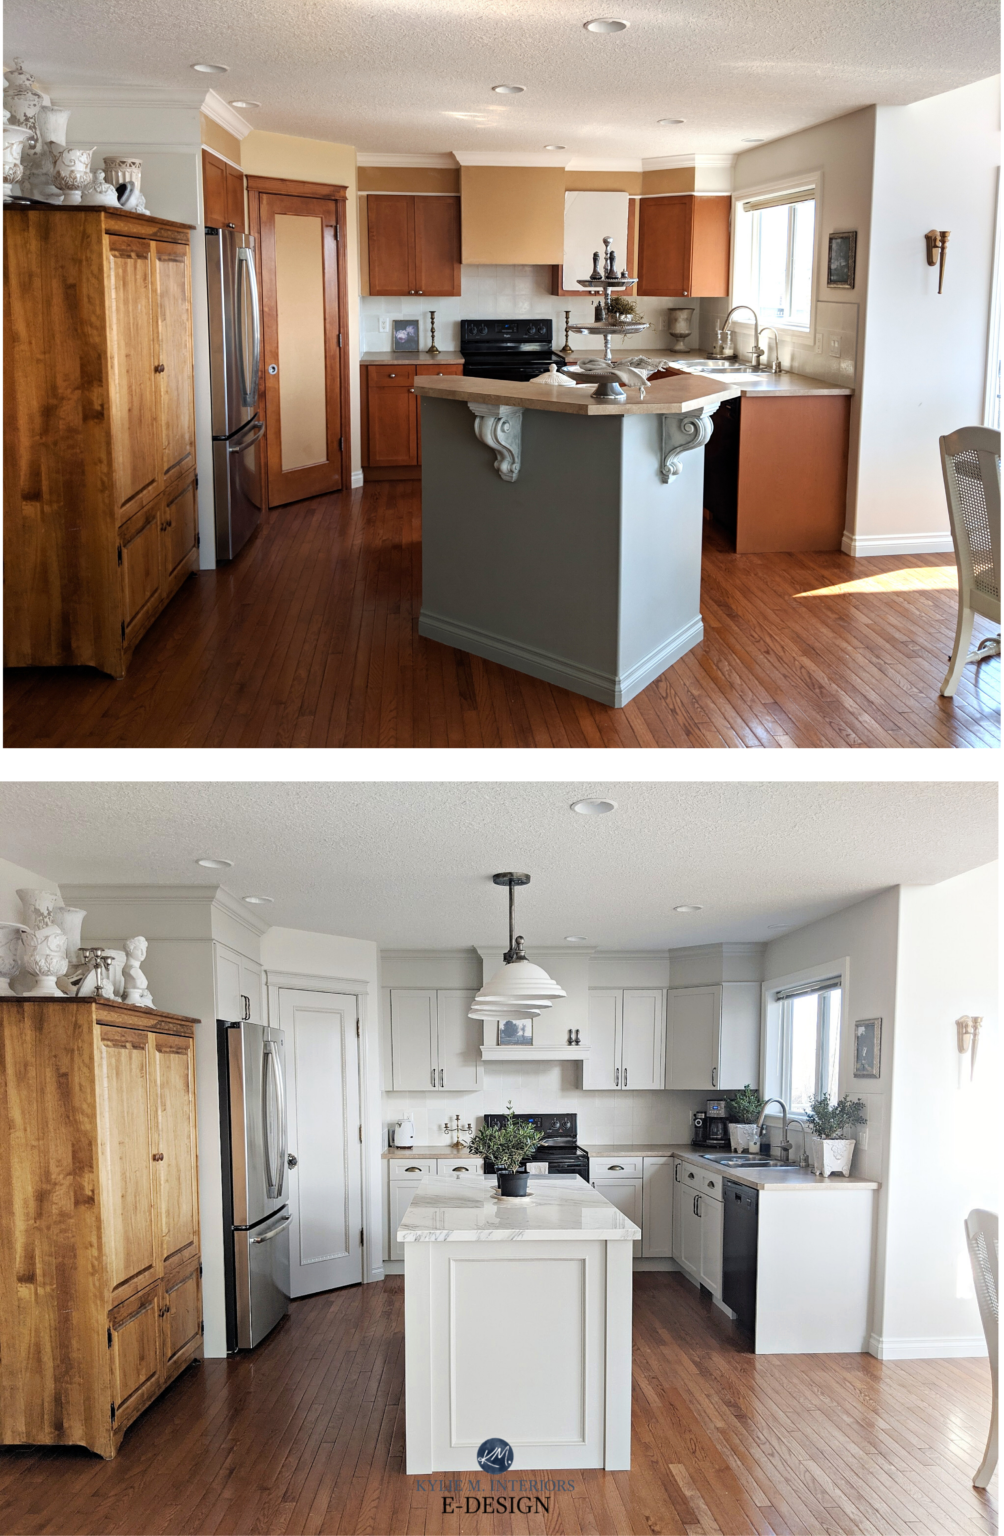 Should I Paint My Oak Cabinets or Keep them Stained? A ...